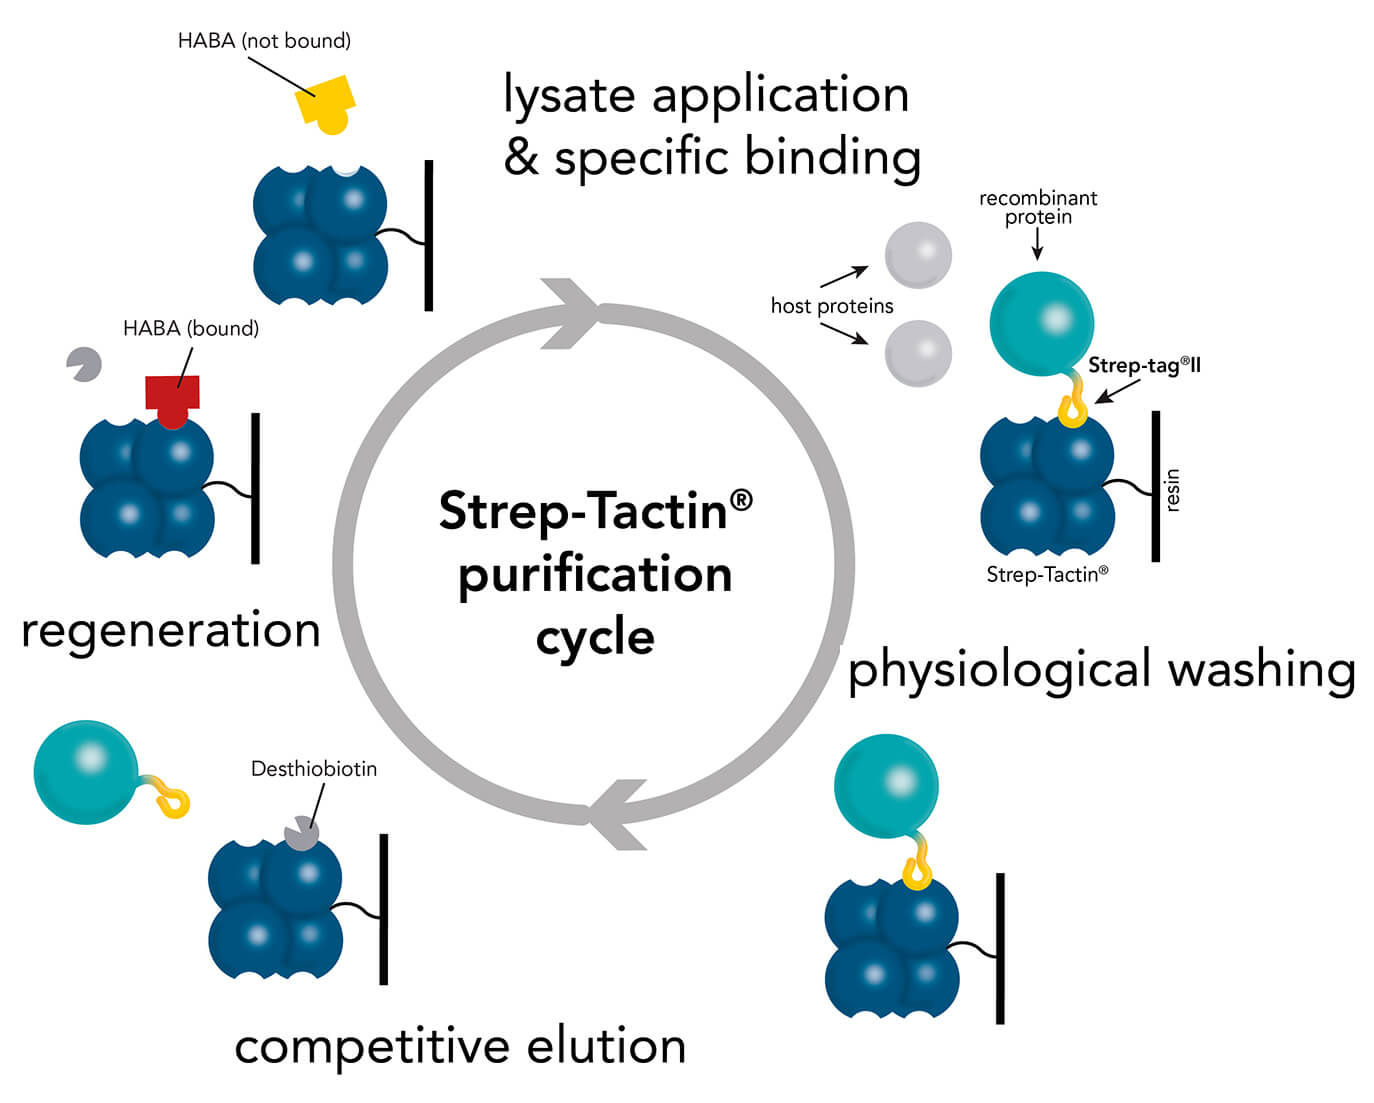 Strep-Tactin® protein purification cycle